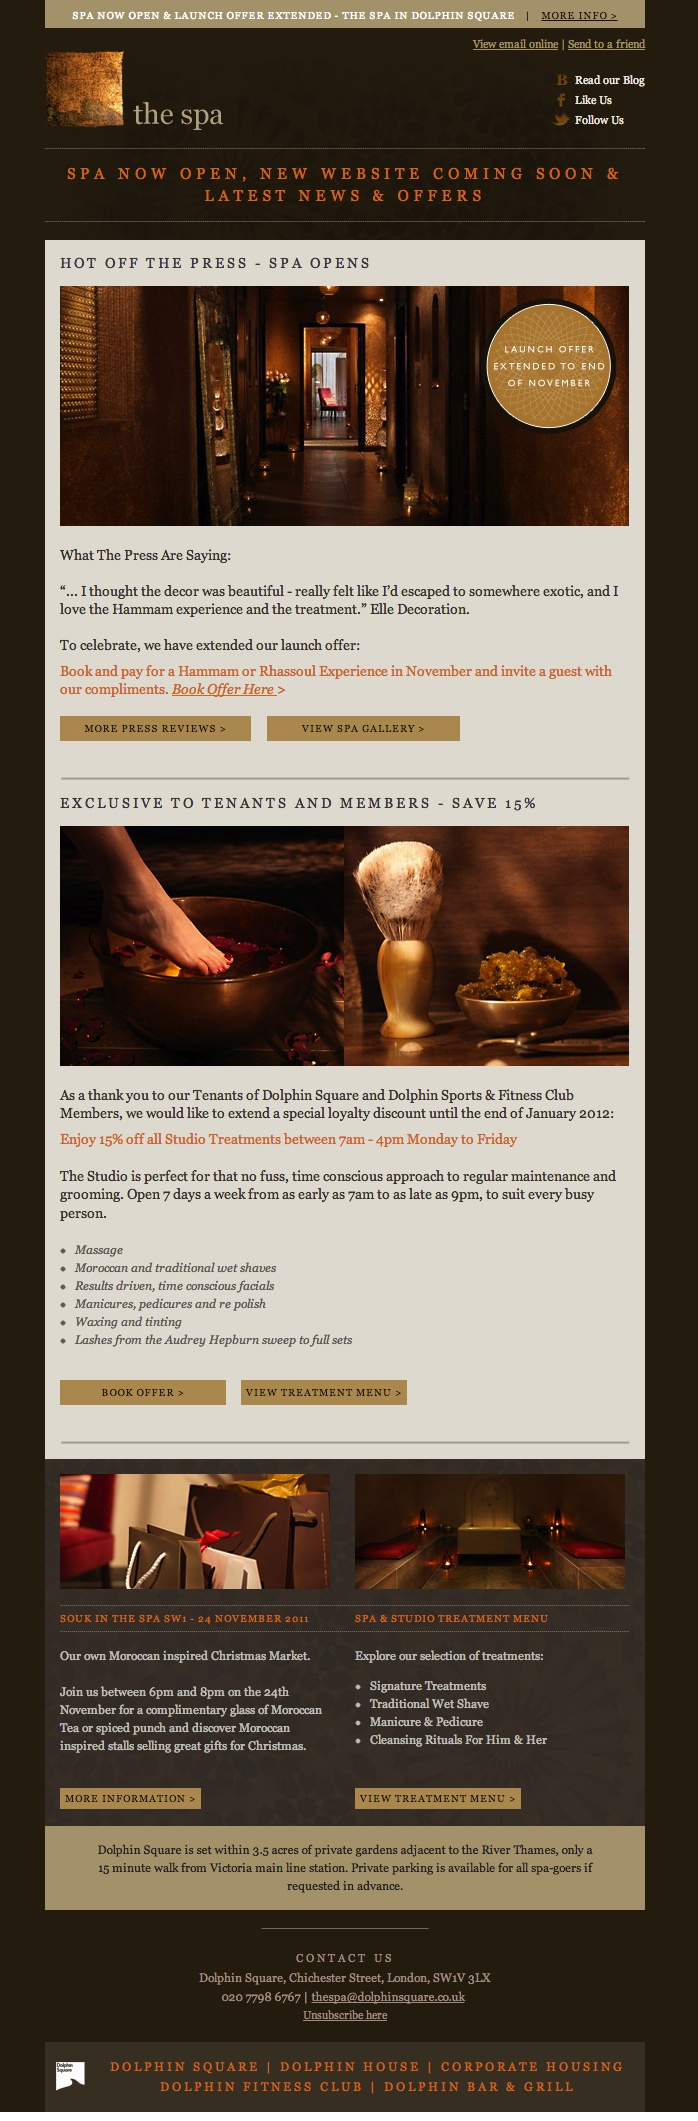 Our design for Dolphin Spa email newsletter - gorgeous Moroccan spa near Victoria